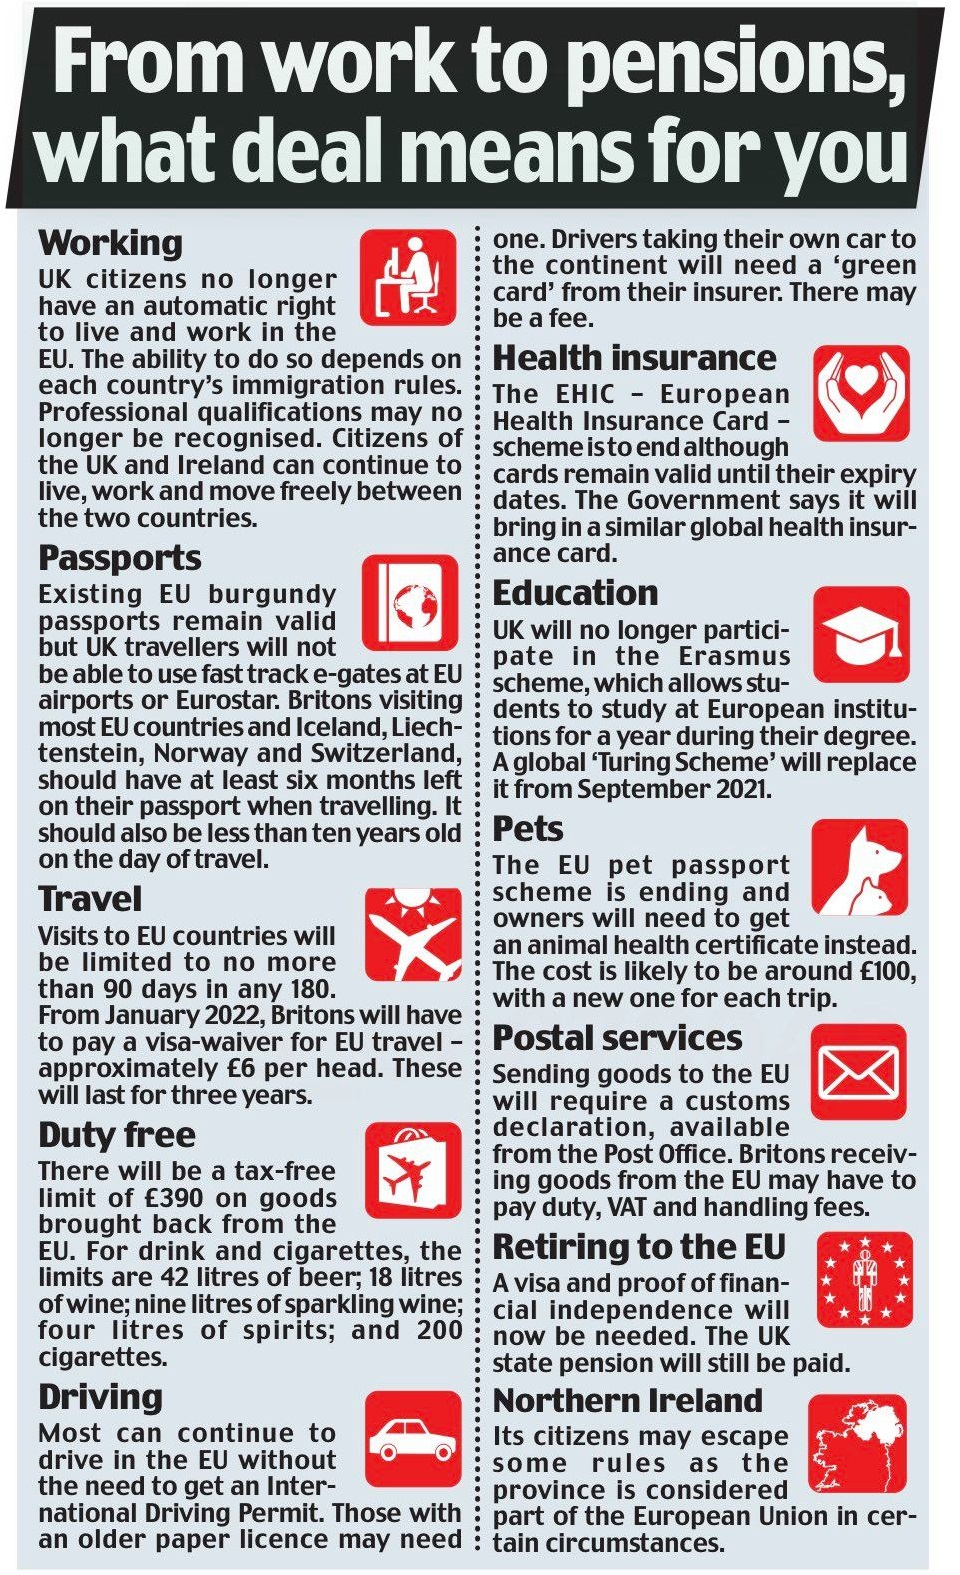 Daily Mail's Brexit benefits